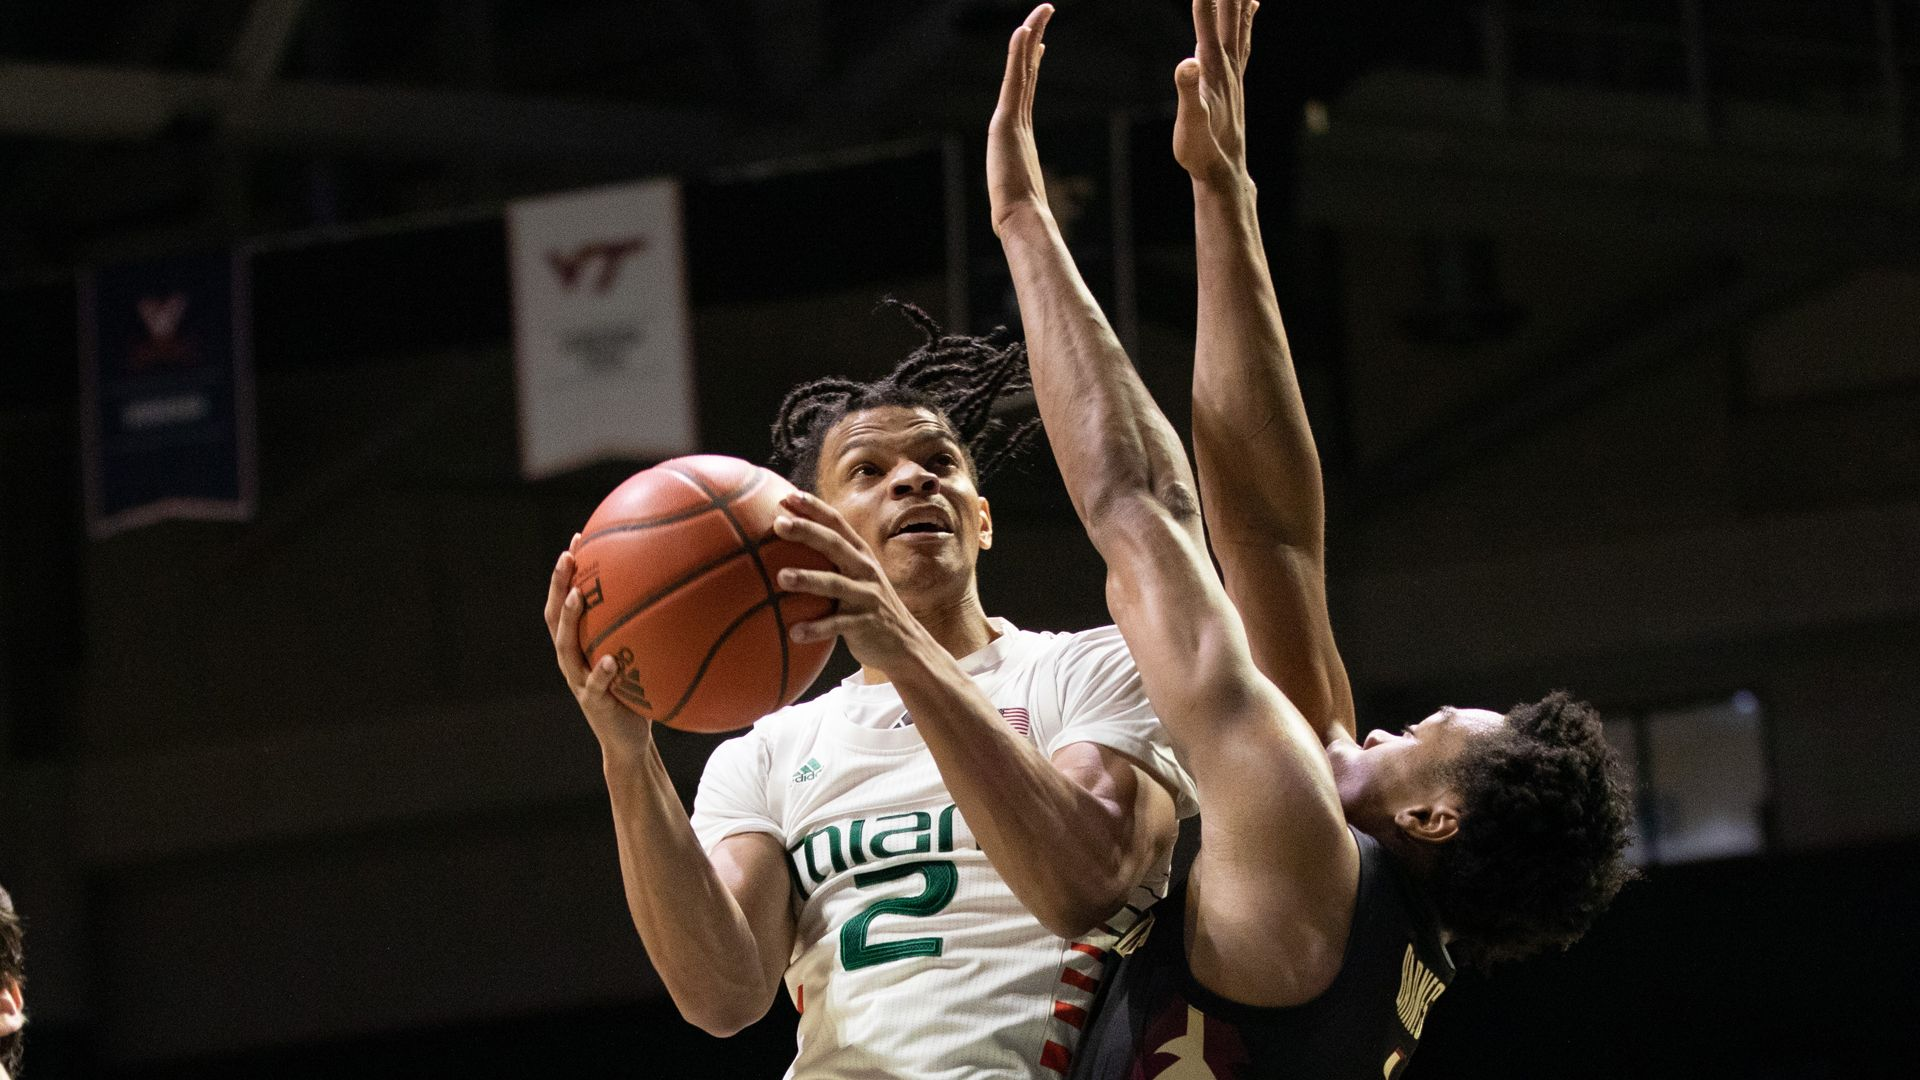 Wong Scores 29 as Canes Fall to No. 11/9 Florida State